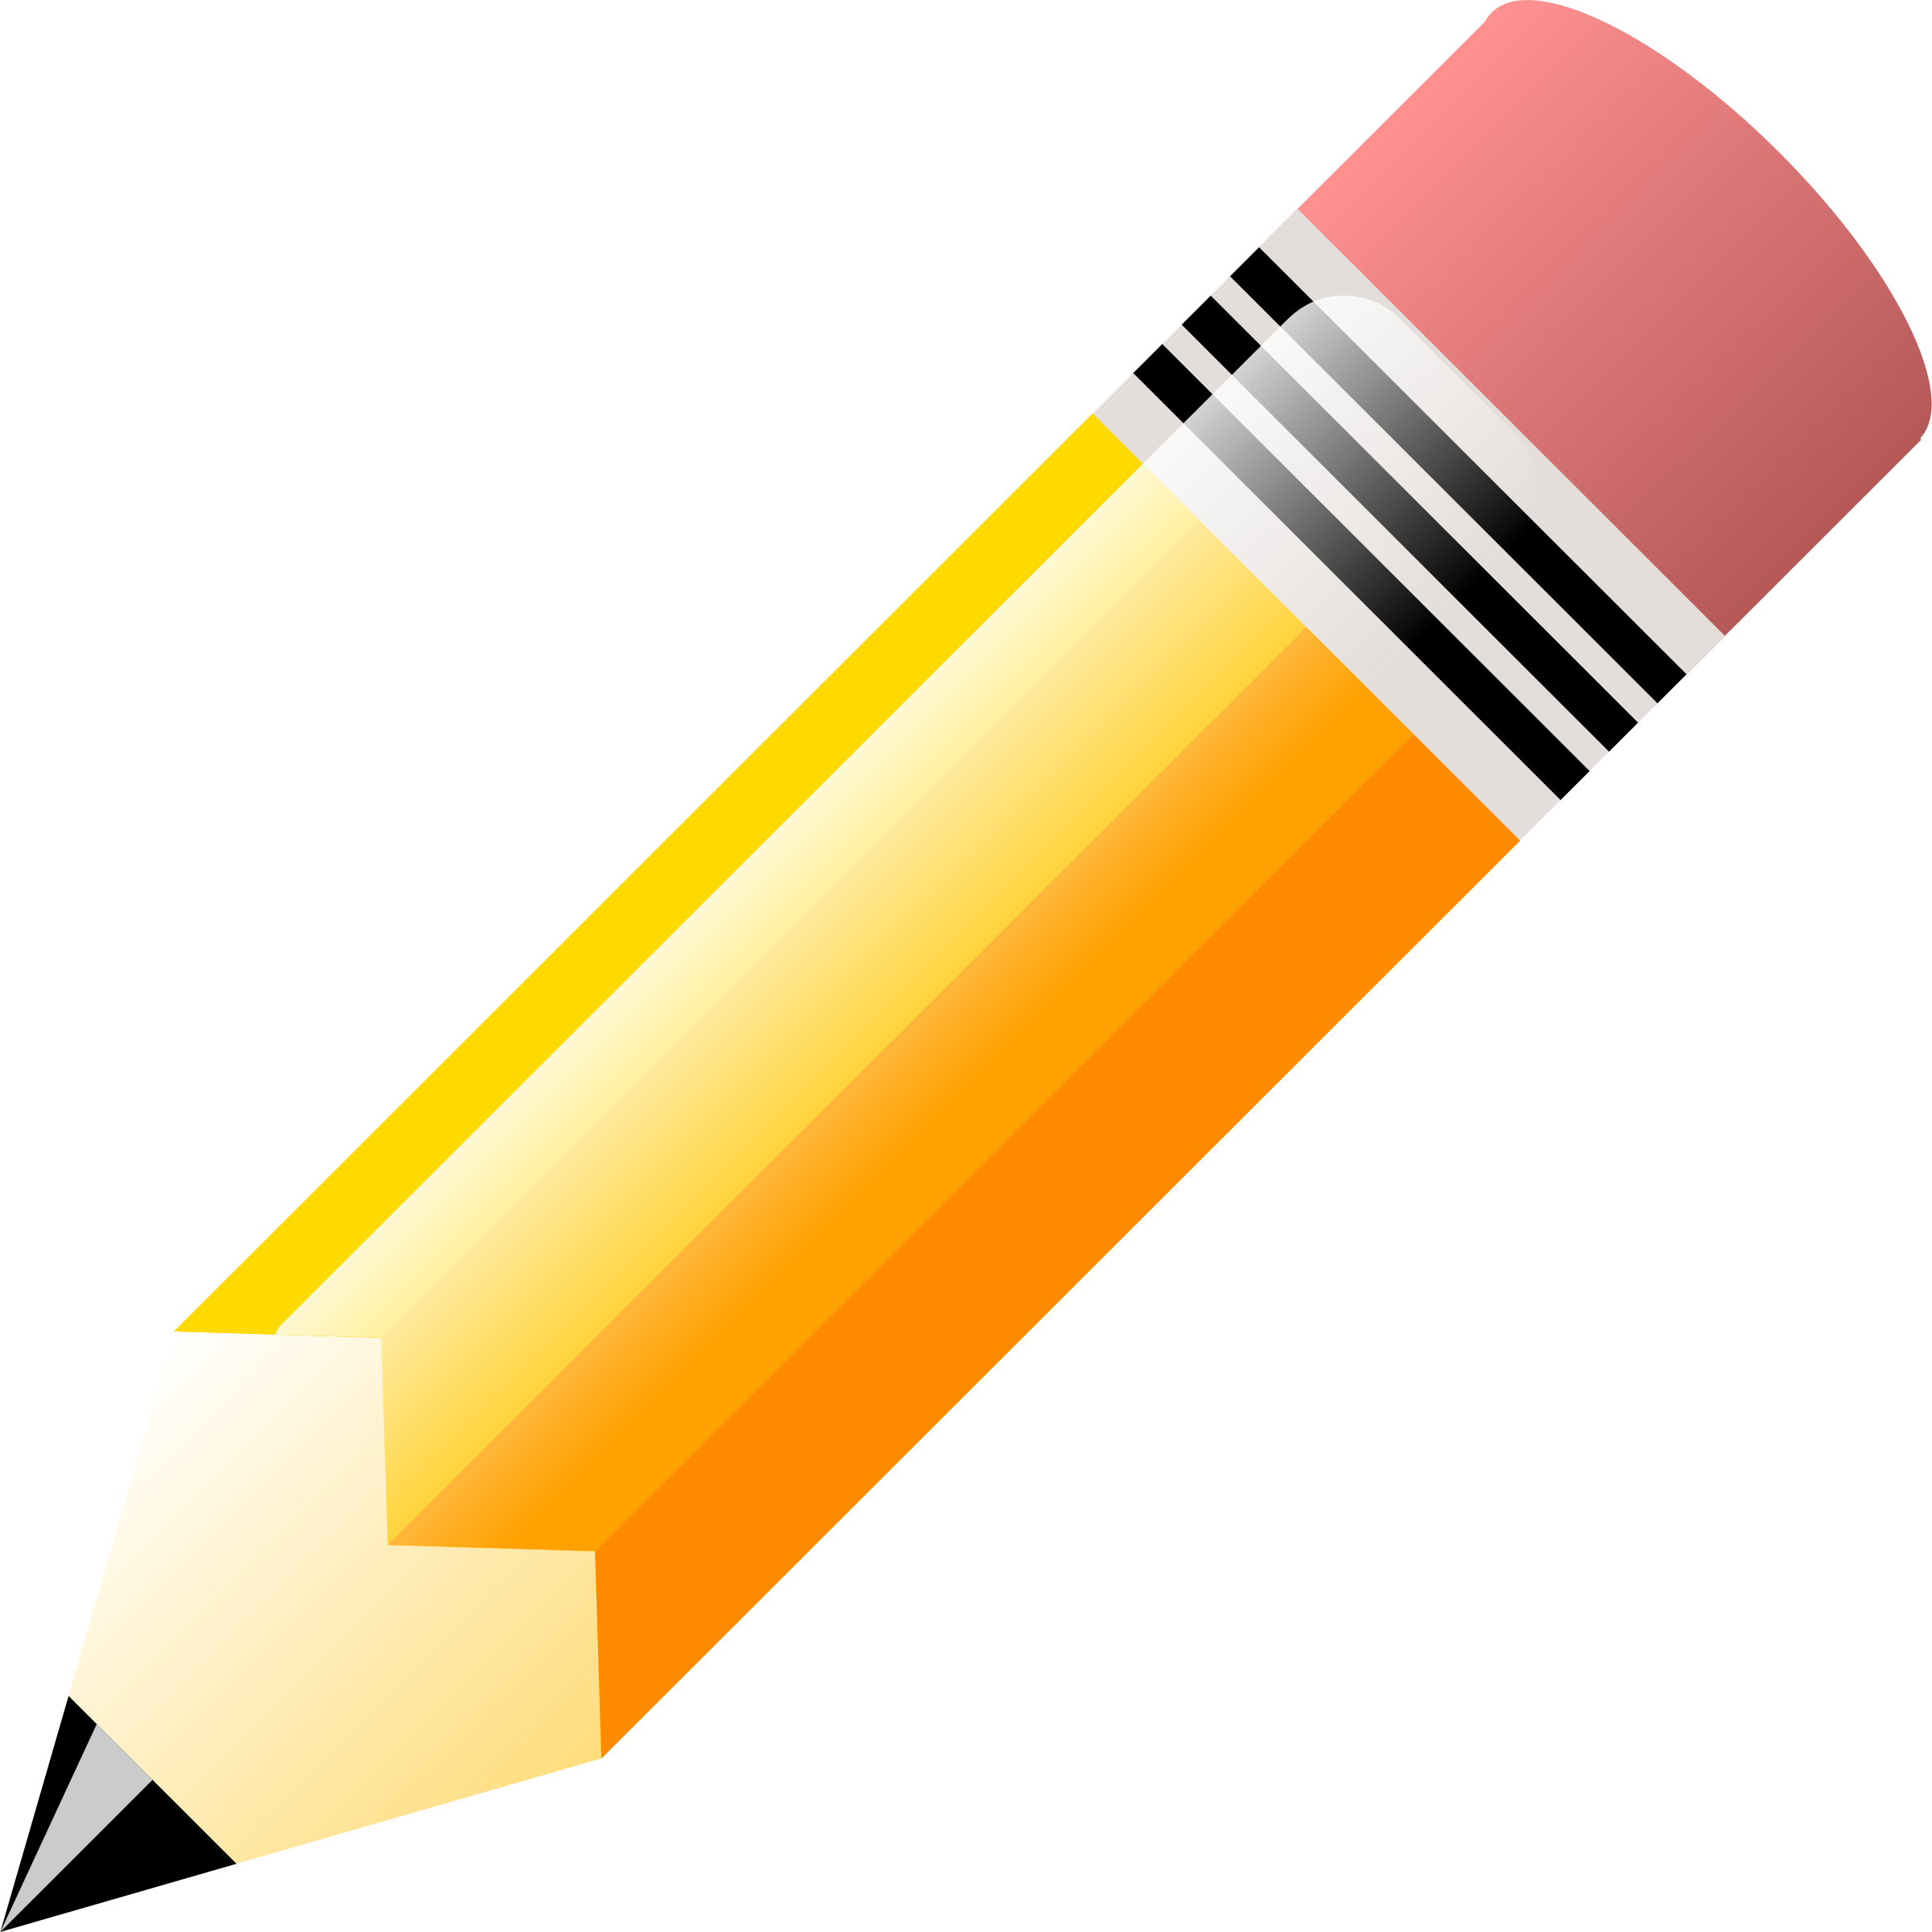 Pen clipart education 5 Pencil Pencils Cliparts 5